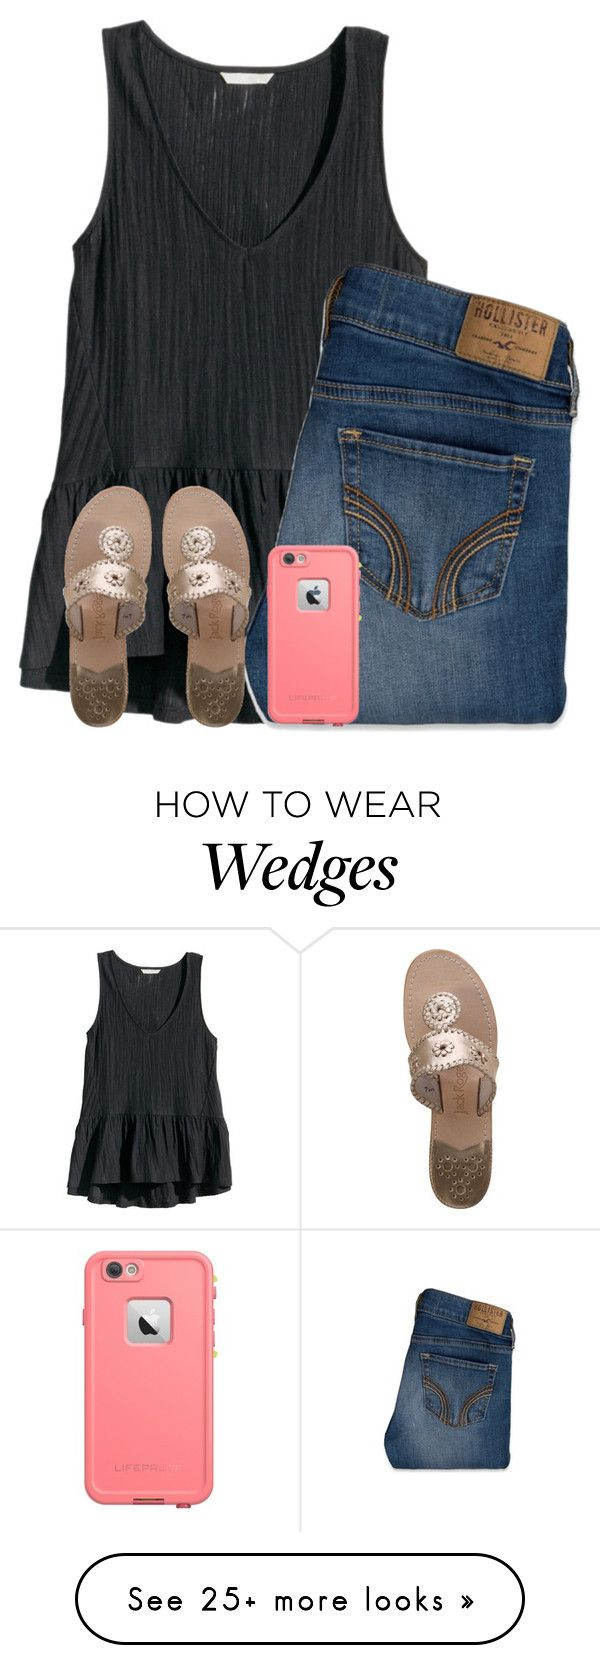 """""""{God made girls}"""" by kaitlynbug1226 on Polyvore featuring H&M, Hollister Co. and Jack Rogers"""